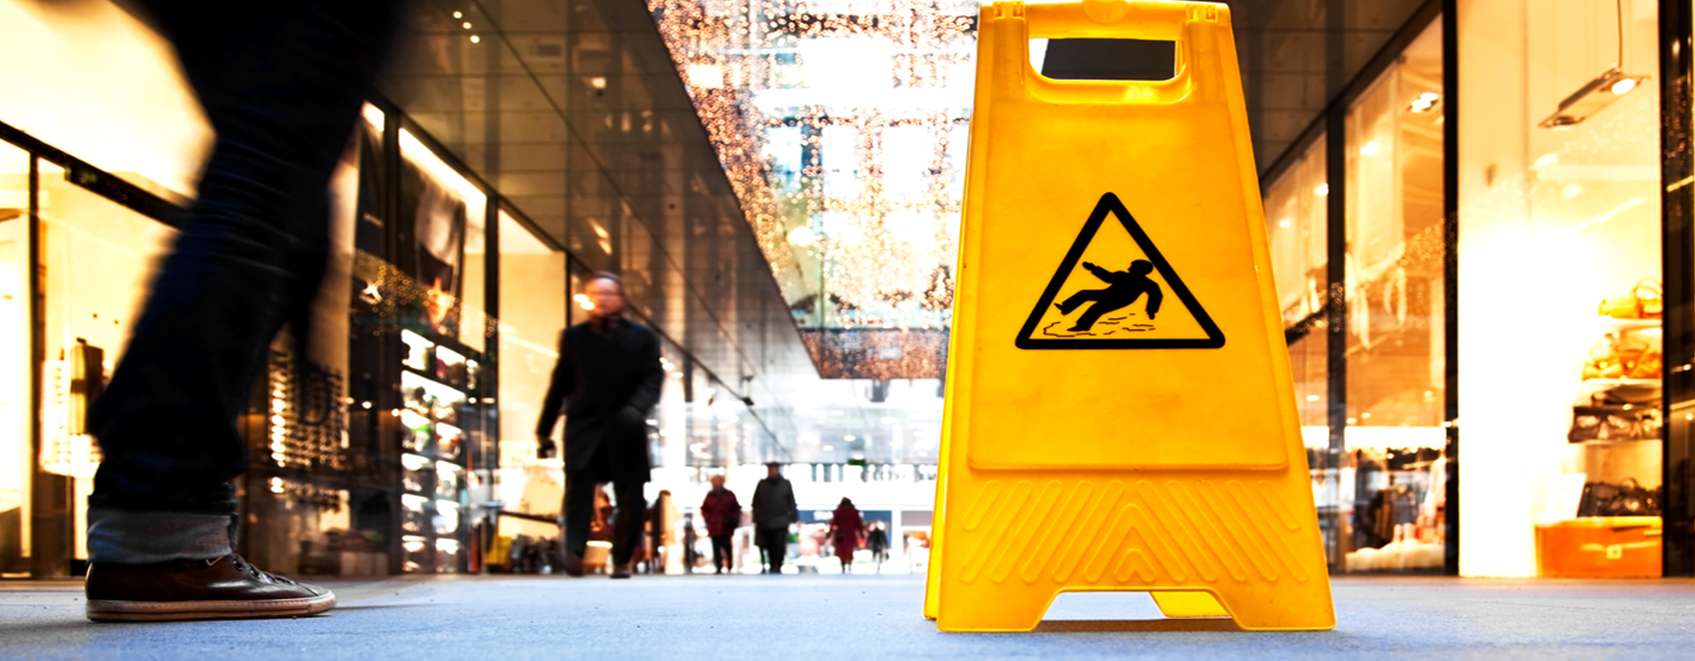 Busy walkway with caution for slippery floors sign.